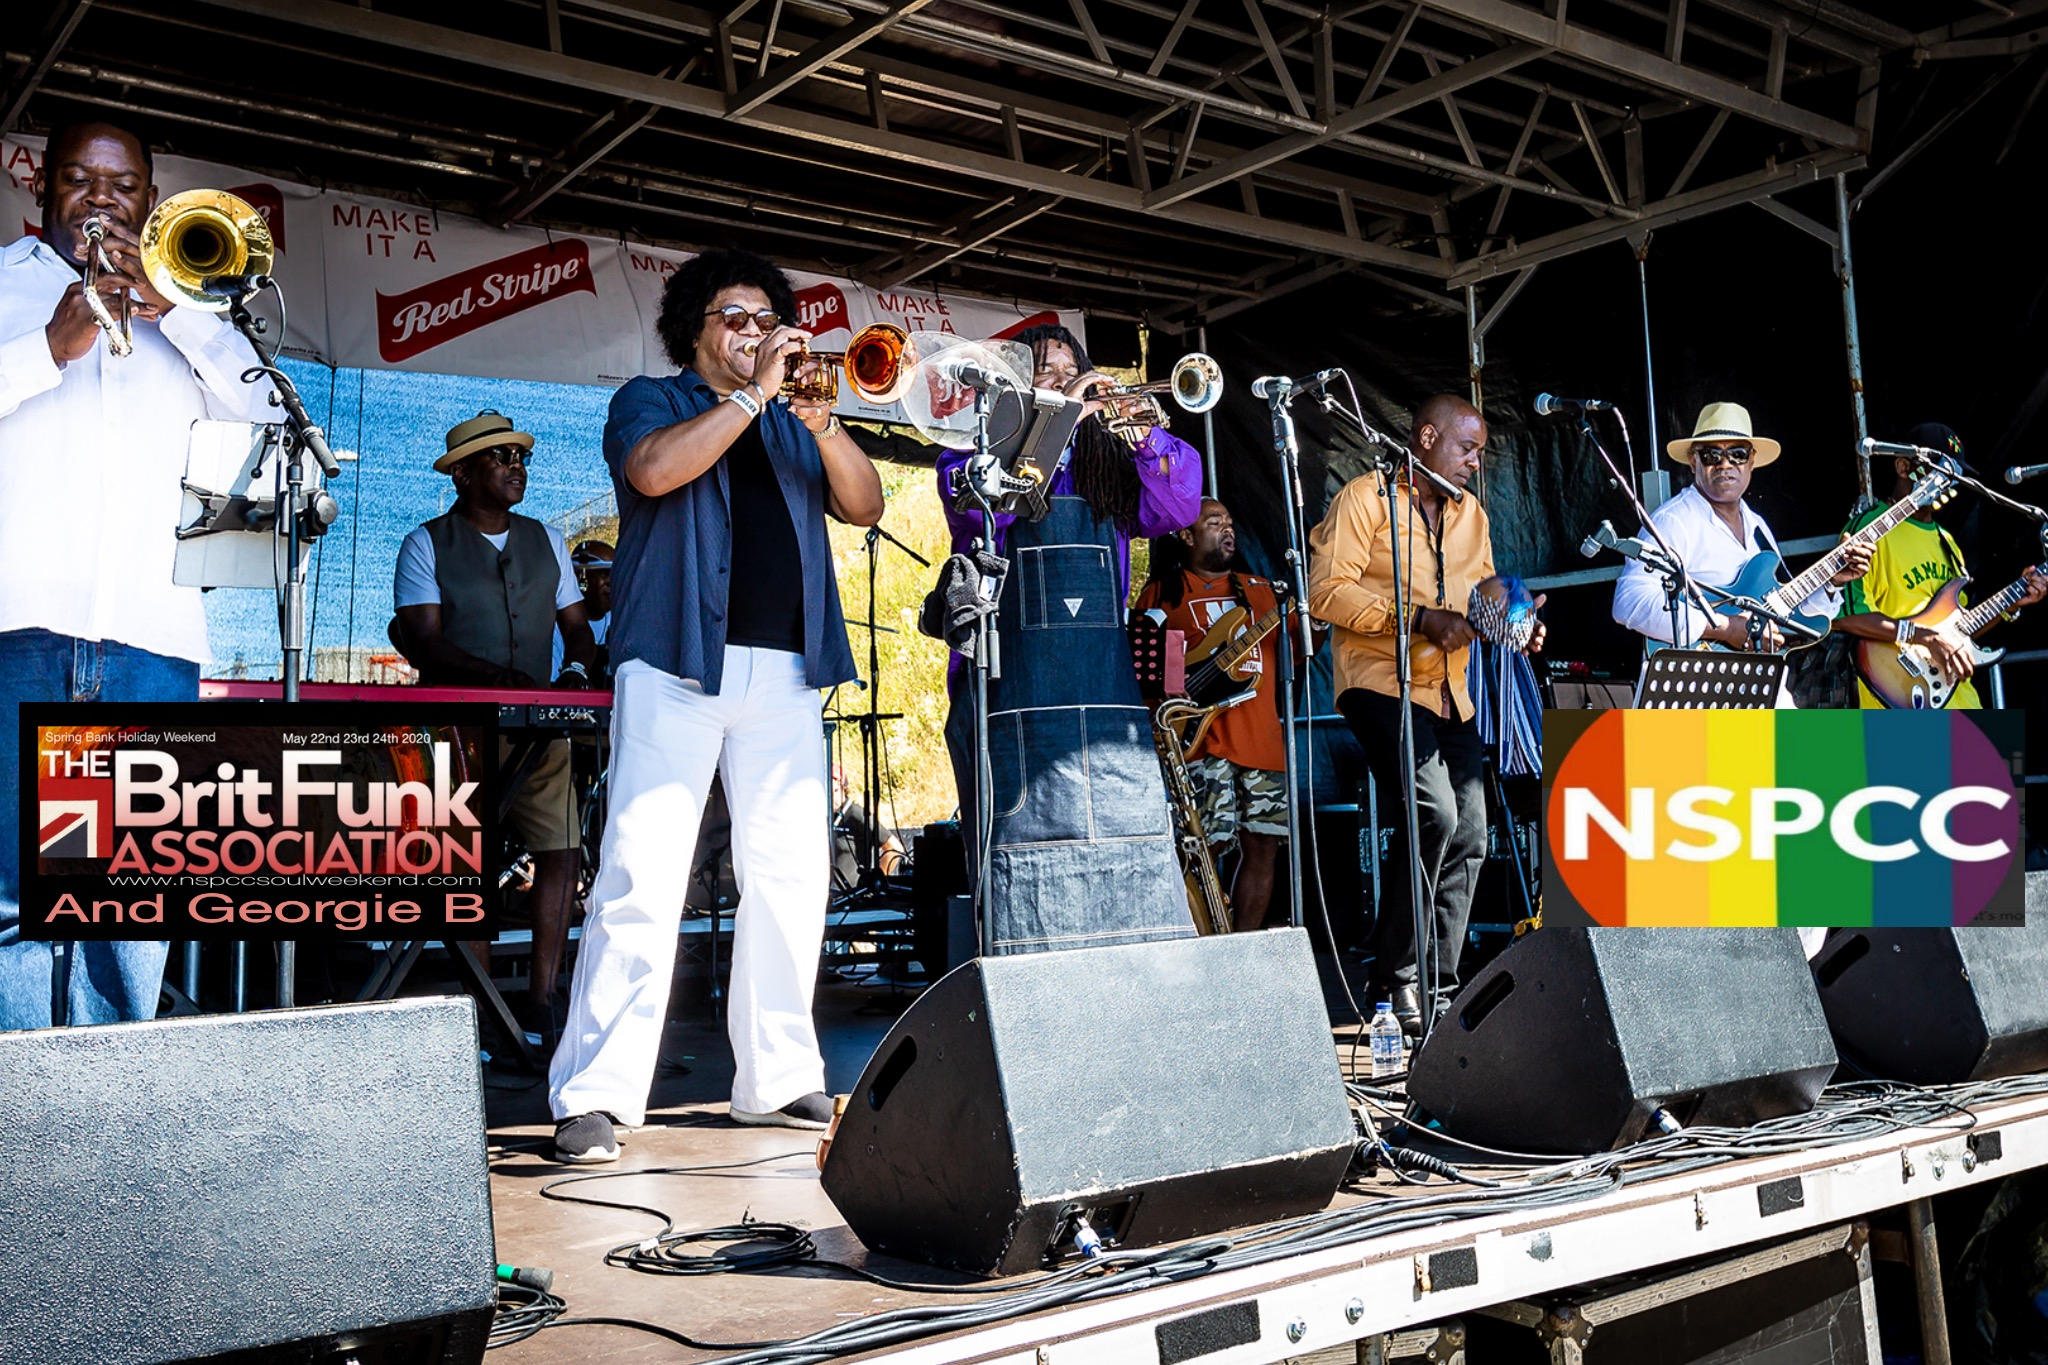 Soulful Etiquette Events Recommends NSPCC Soul Weekend 2020 With The Brit Funk Association